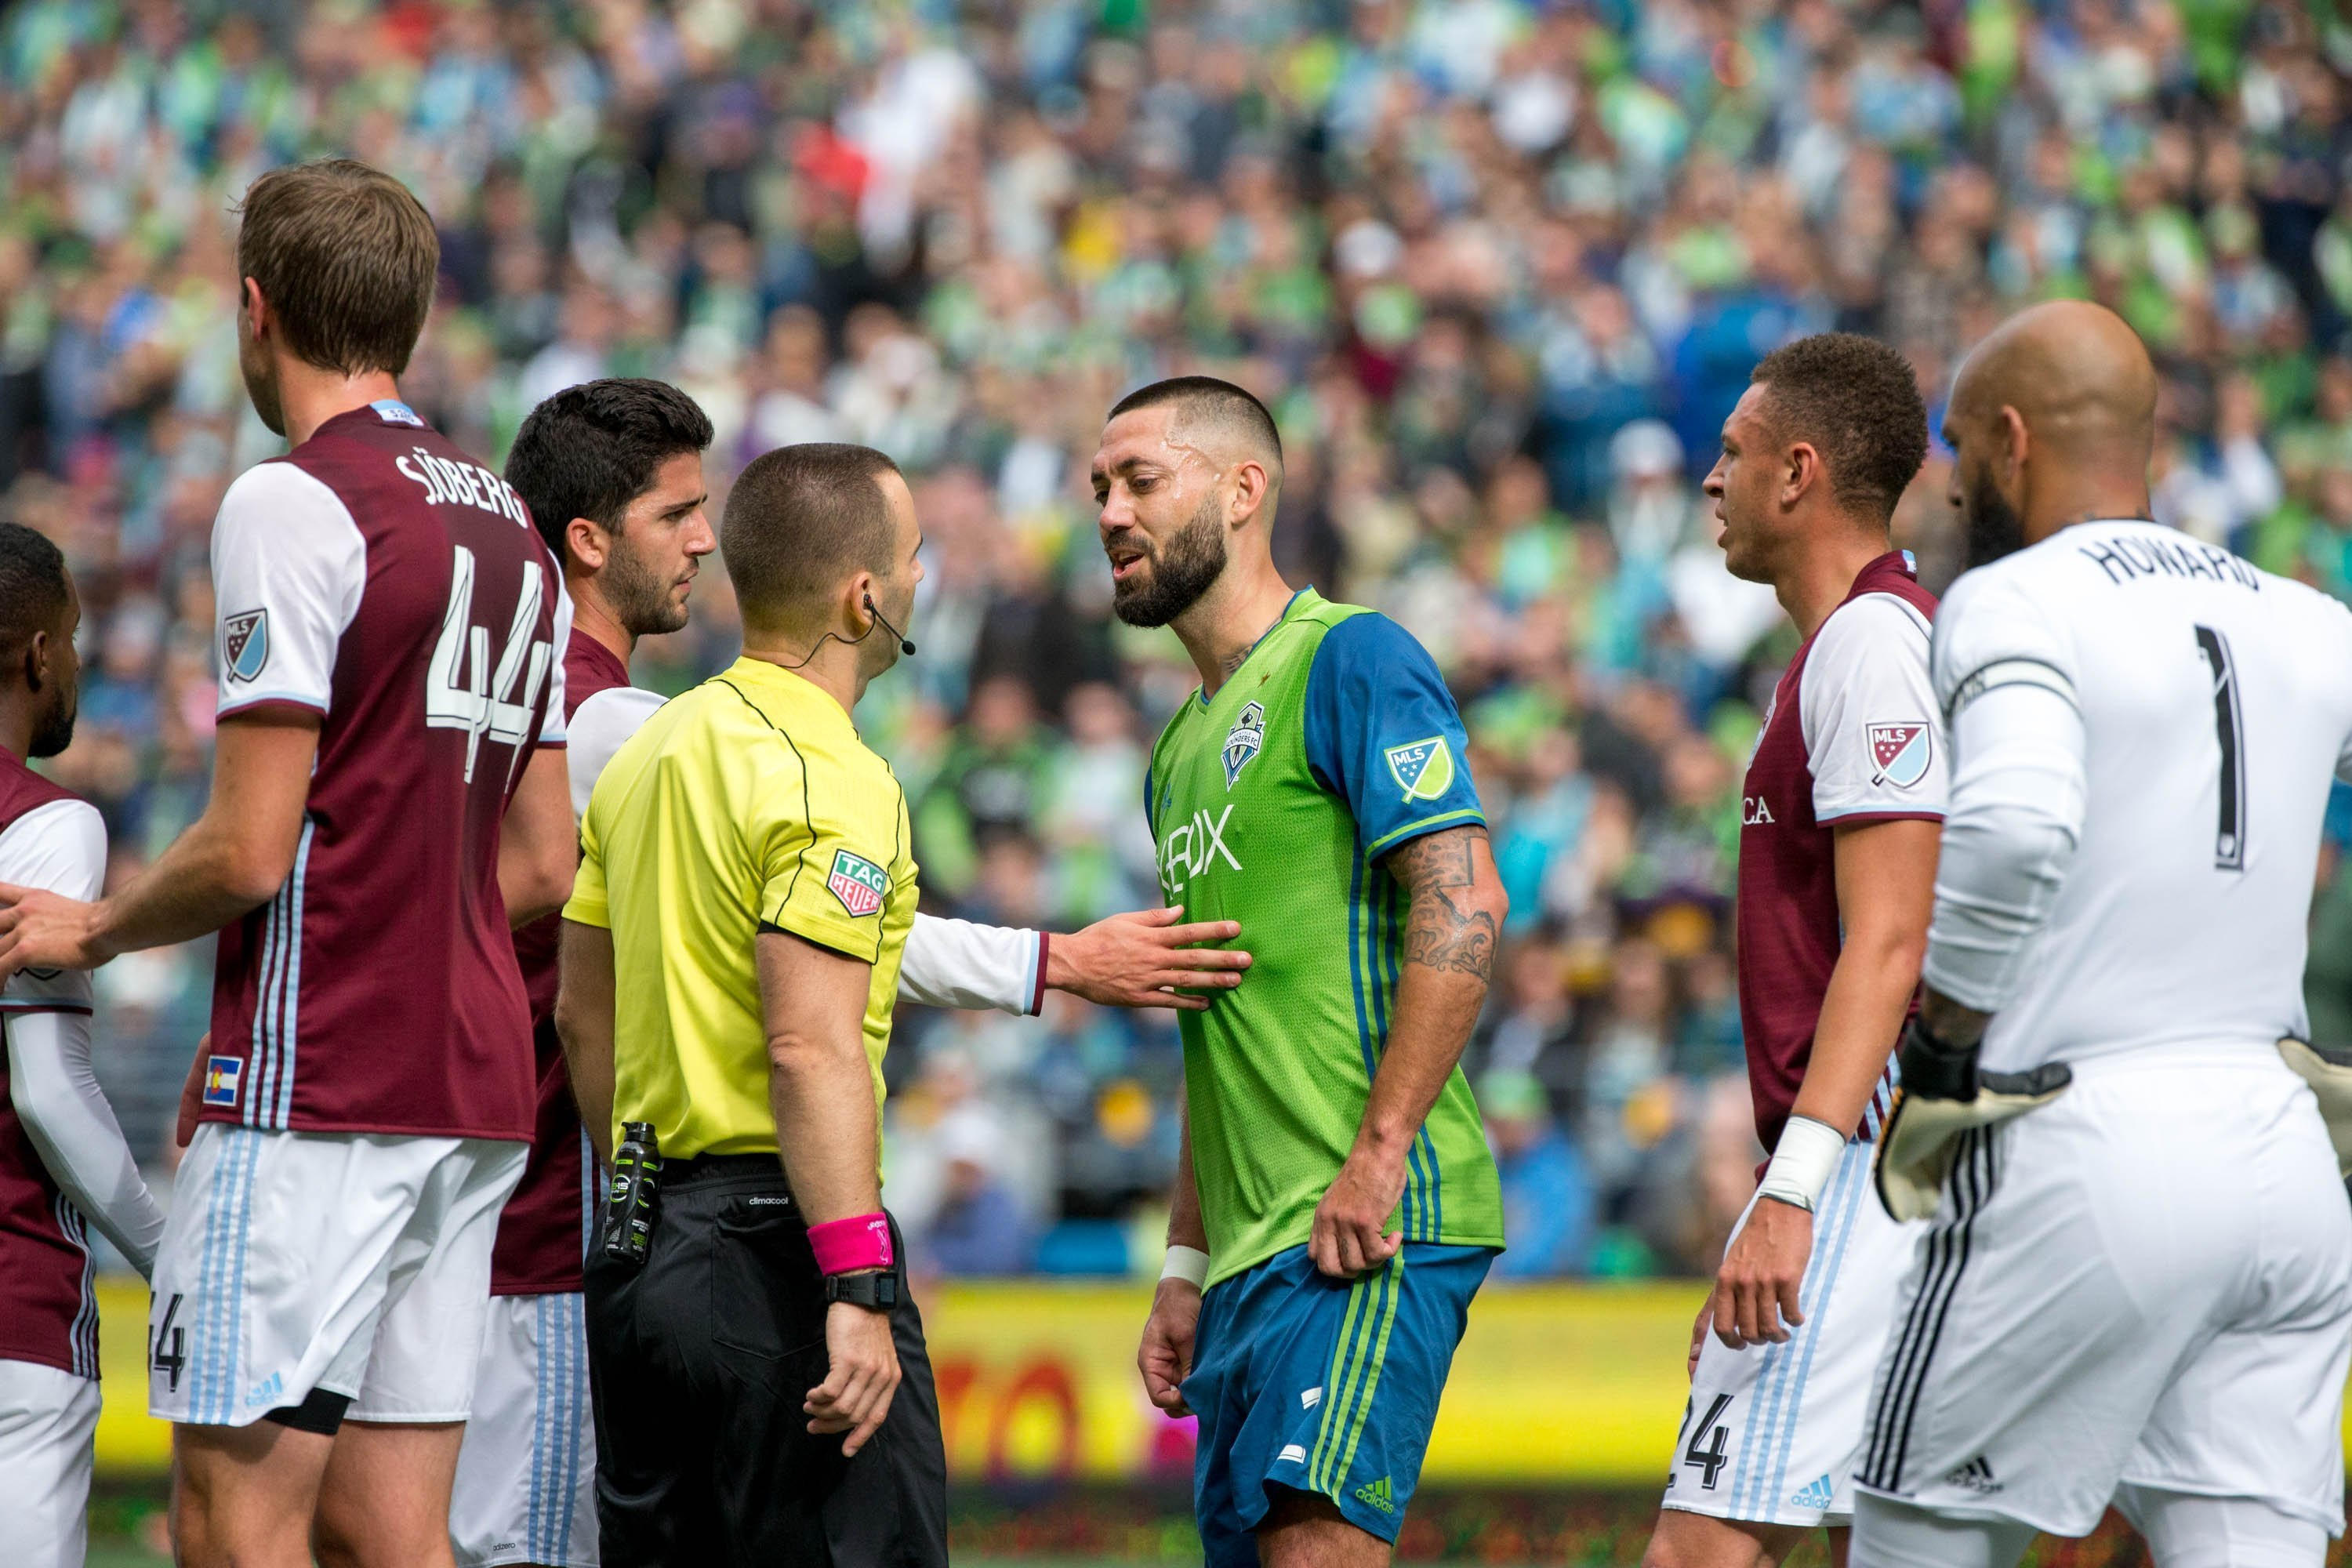 Seattle Sounders midfielder Clint Dempsey (2) speaks to the referee after receiving a red card during the first half of an MLS soccer game against the Colorado Rapids in Seattle on Sunday, Oct. 22, 2017. (Courtney Pedroza/The Seattle Times via AP)